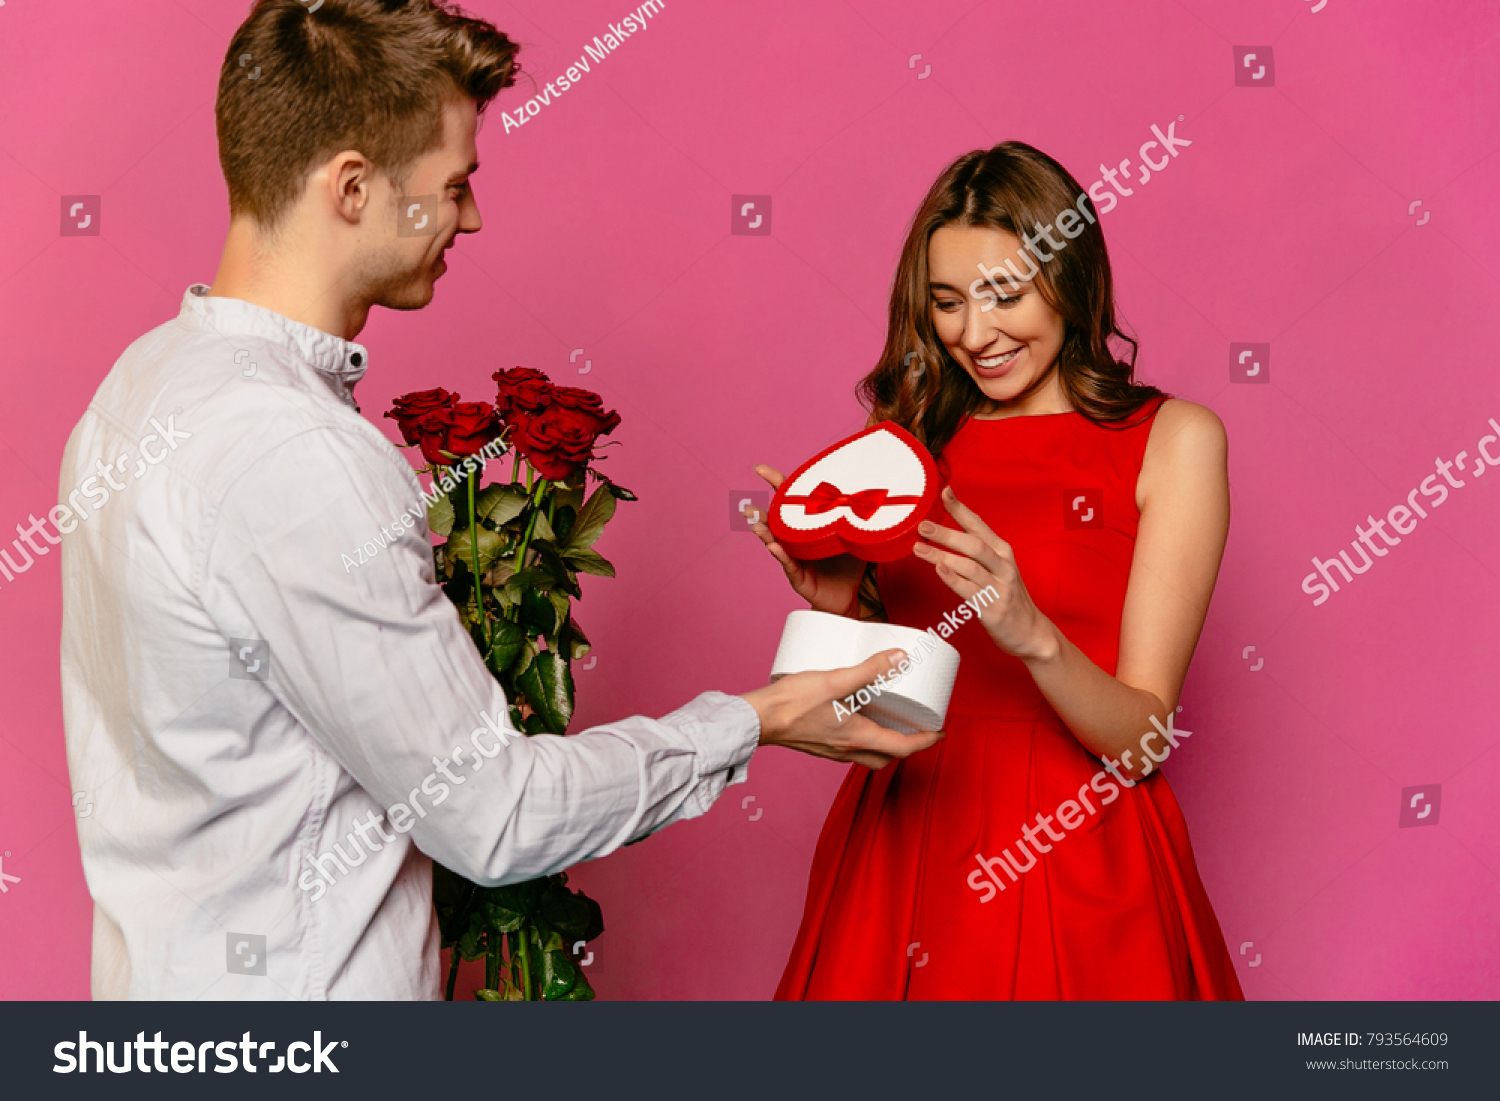 Attractive Guy Making Gift Making Gift Stock Photo 793564609 ...